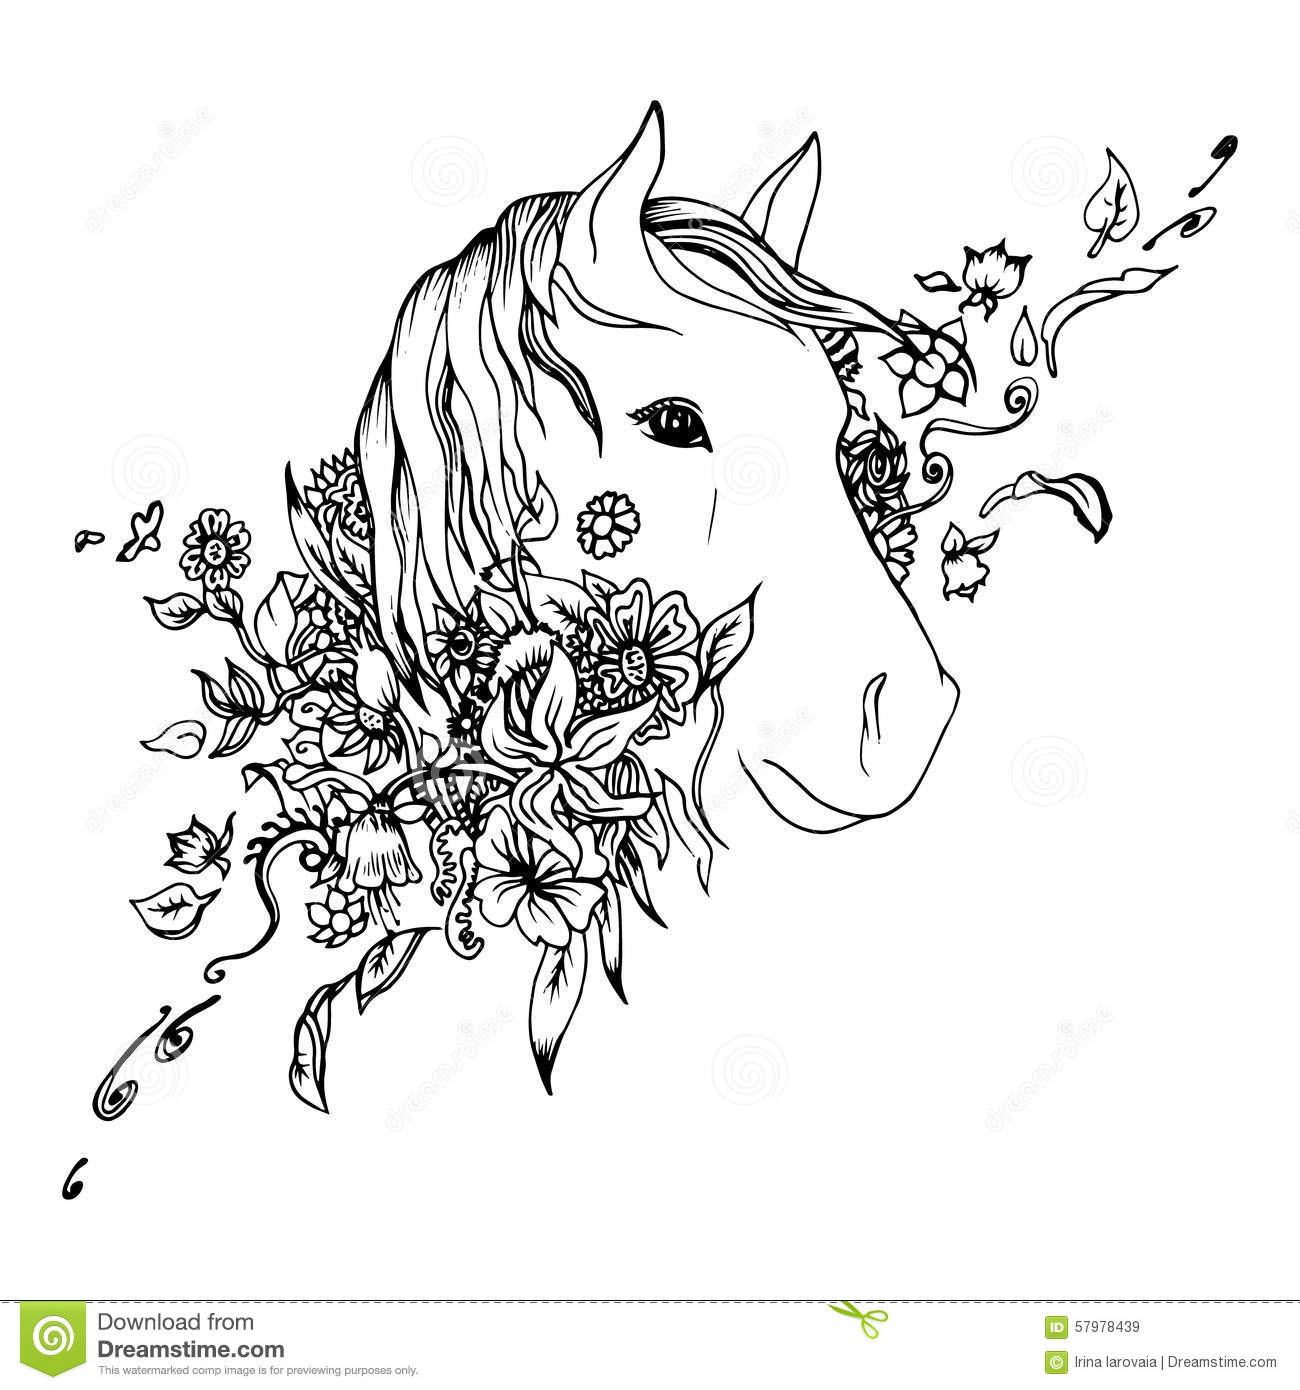 Tte De Cheval Graphique Abstraite Copie Illustration